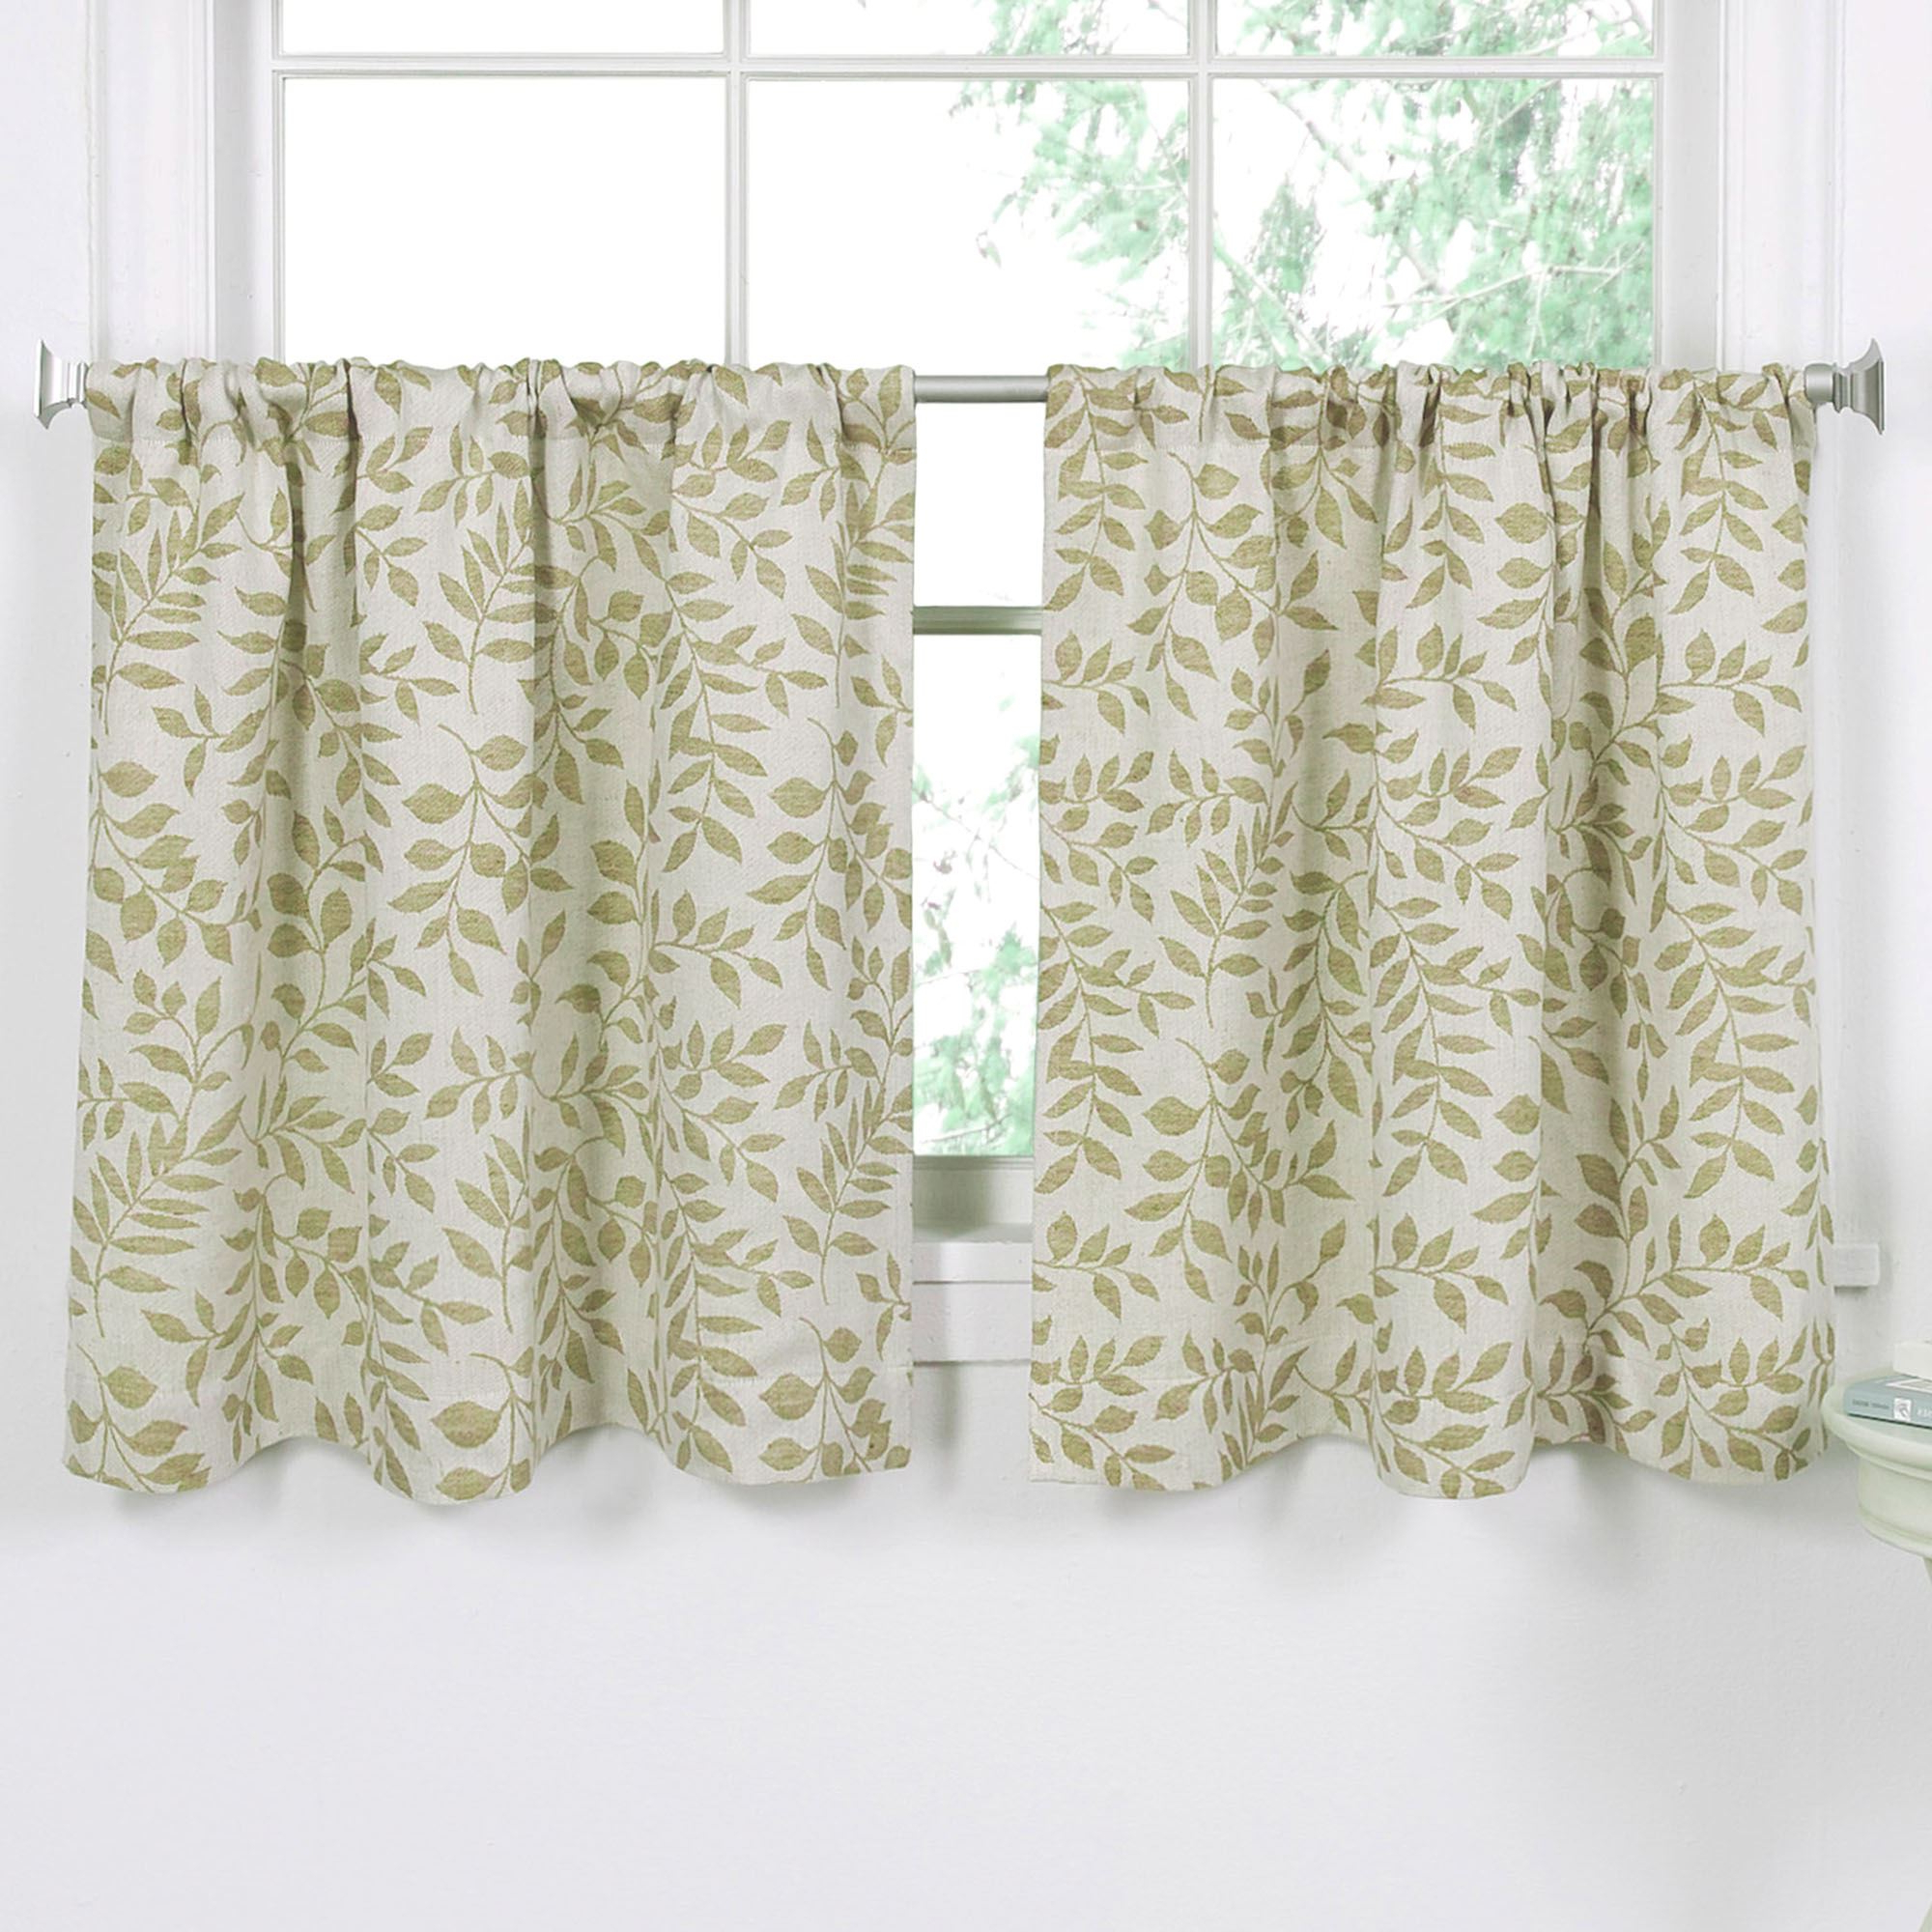 Widely Used Tranquility Curtain Tier Pairs Regarding Tranquil Leaf Design Tier Window Treatment (View 20 of 20)